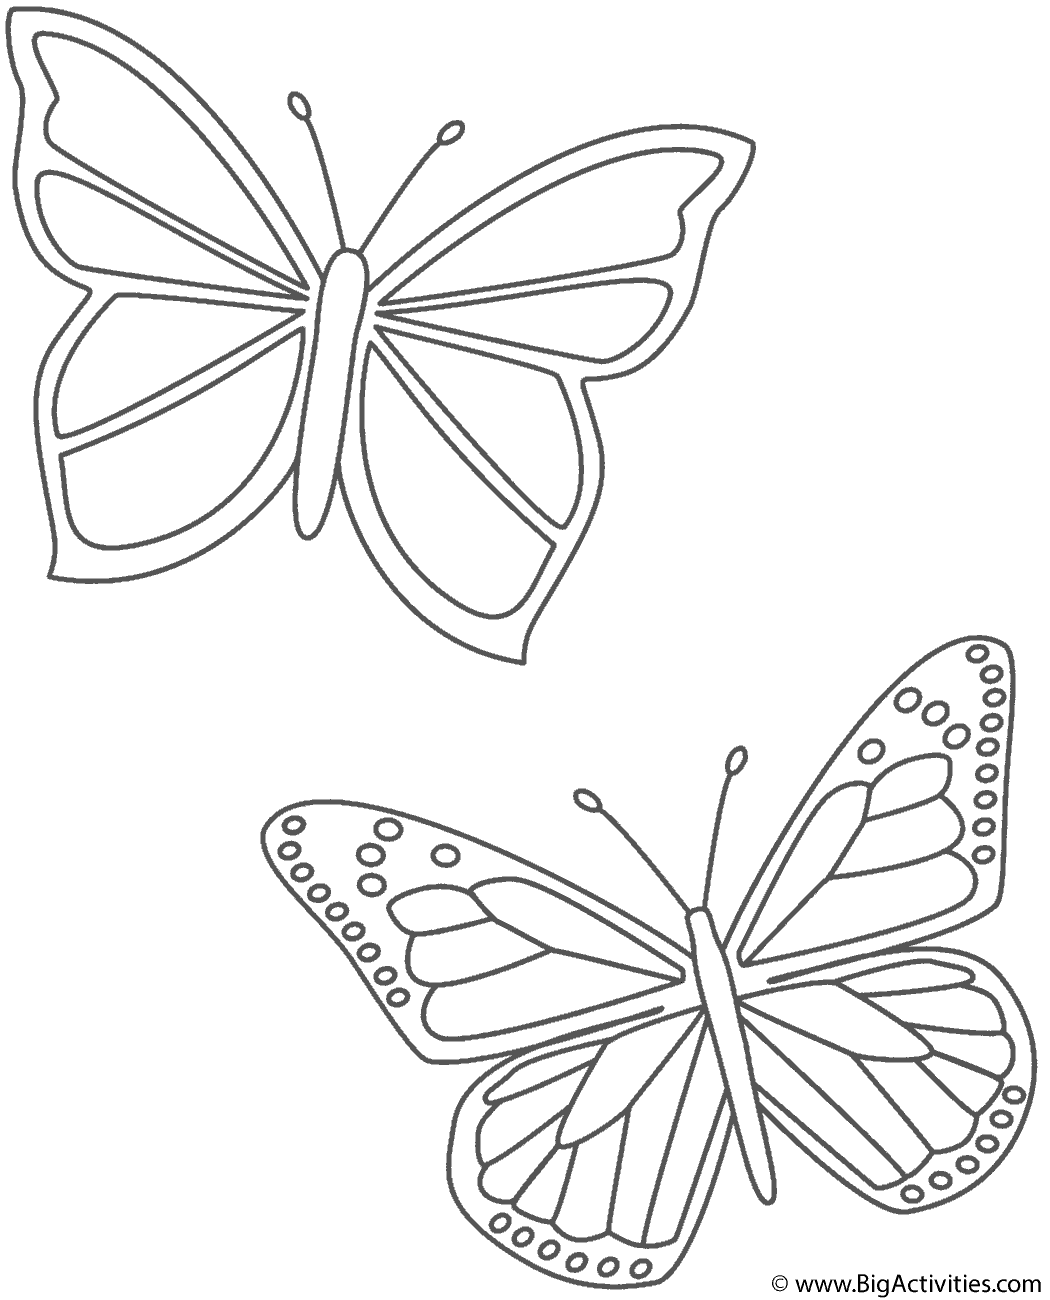 Coloring Page Butterfly Coloring Page Butterfly Drawing Coloring Pages